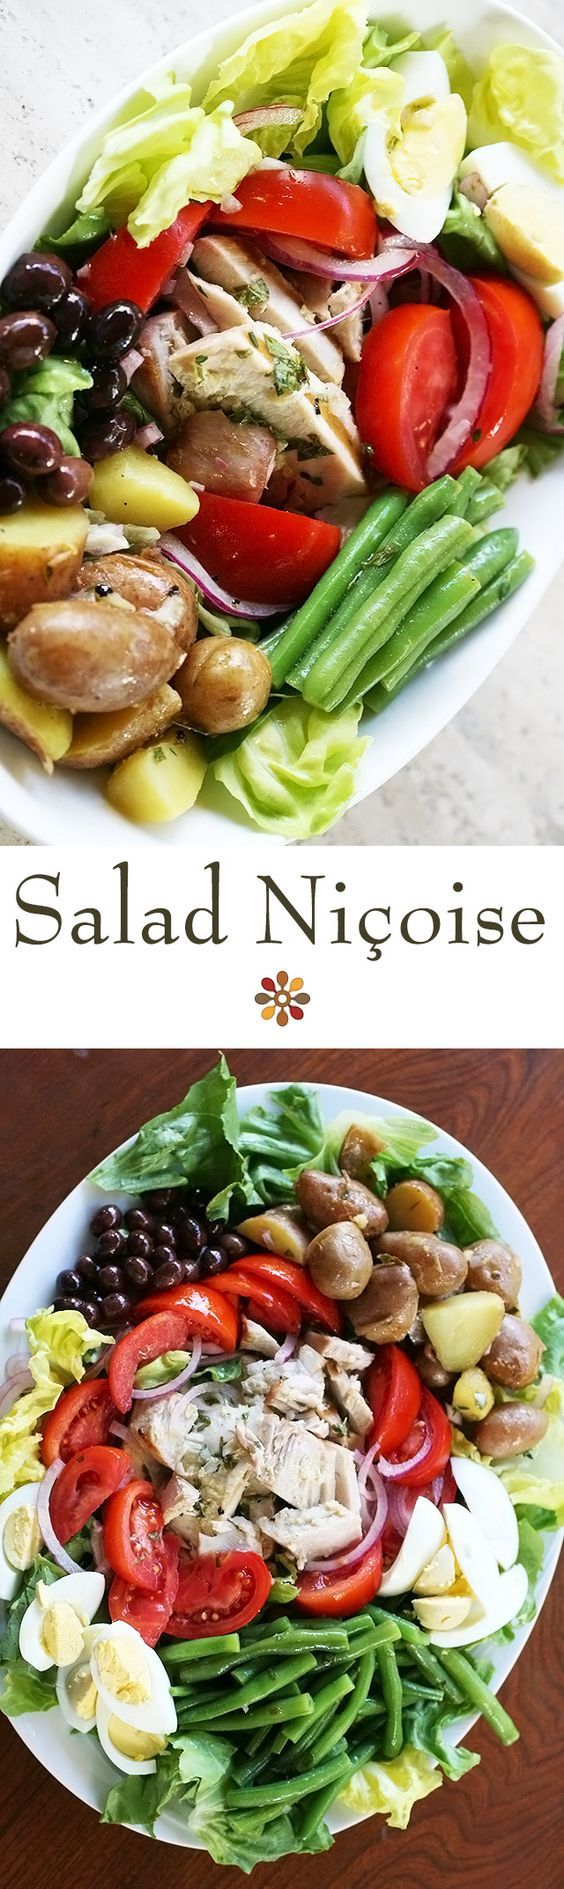 Nicoise Salad ~ Great salad for a summer holiday gathering! A French composed salad with tuna, green beans, hard boiled eggs, tomatoes, onion, capers, and potatoes. ~ SimplyRecipes.com